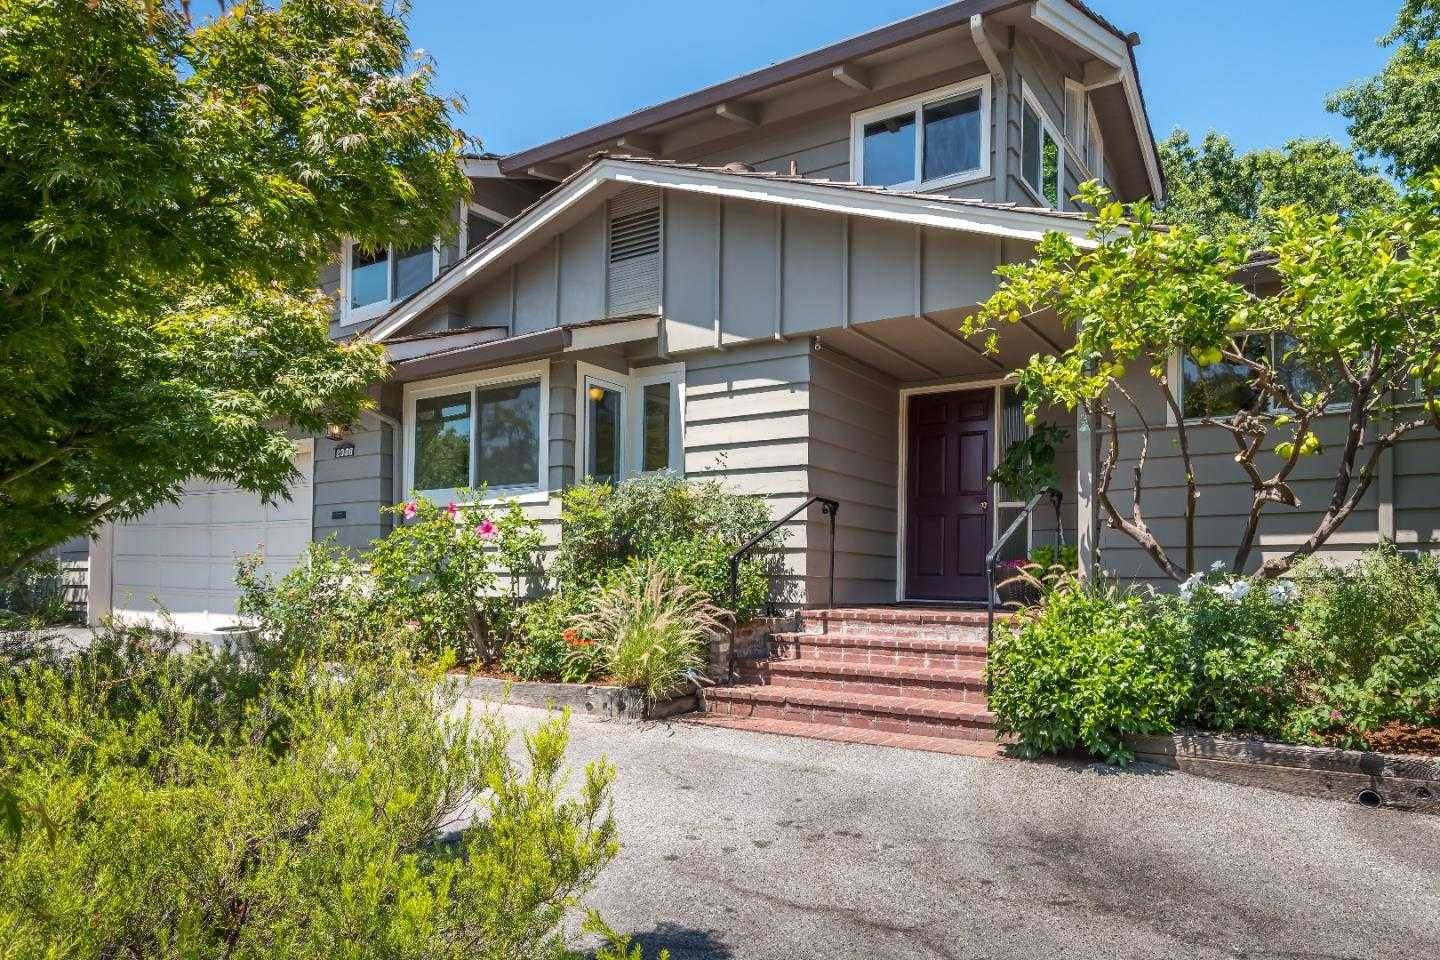 $2,300,000 - 4Br/3Ba -  for Sale in Menlo Park